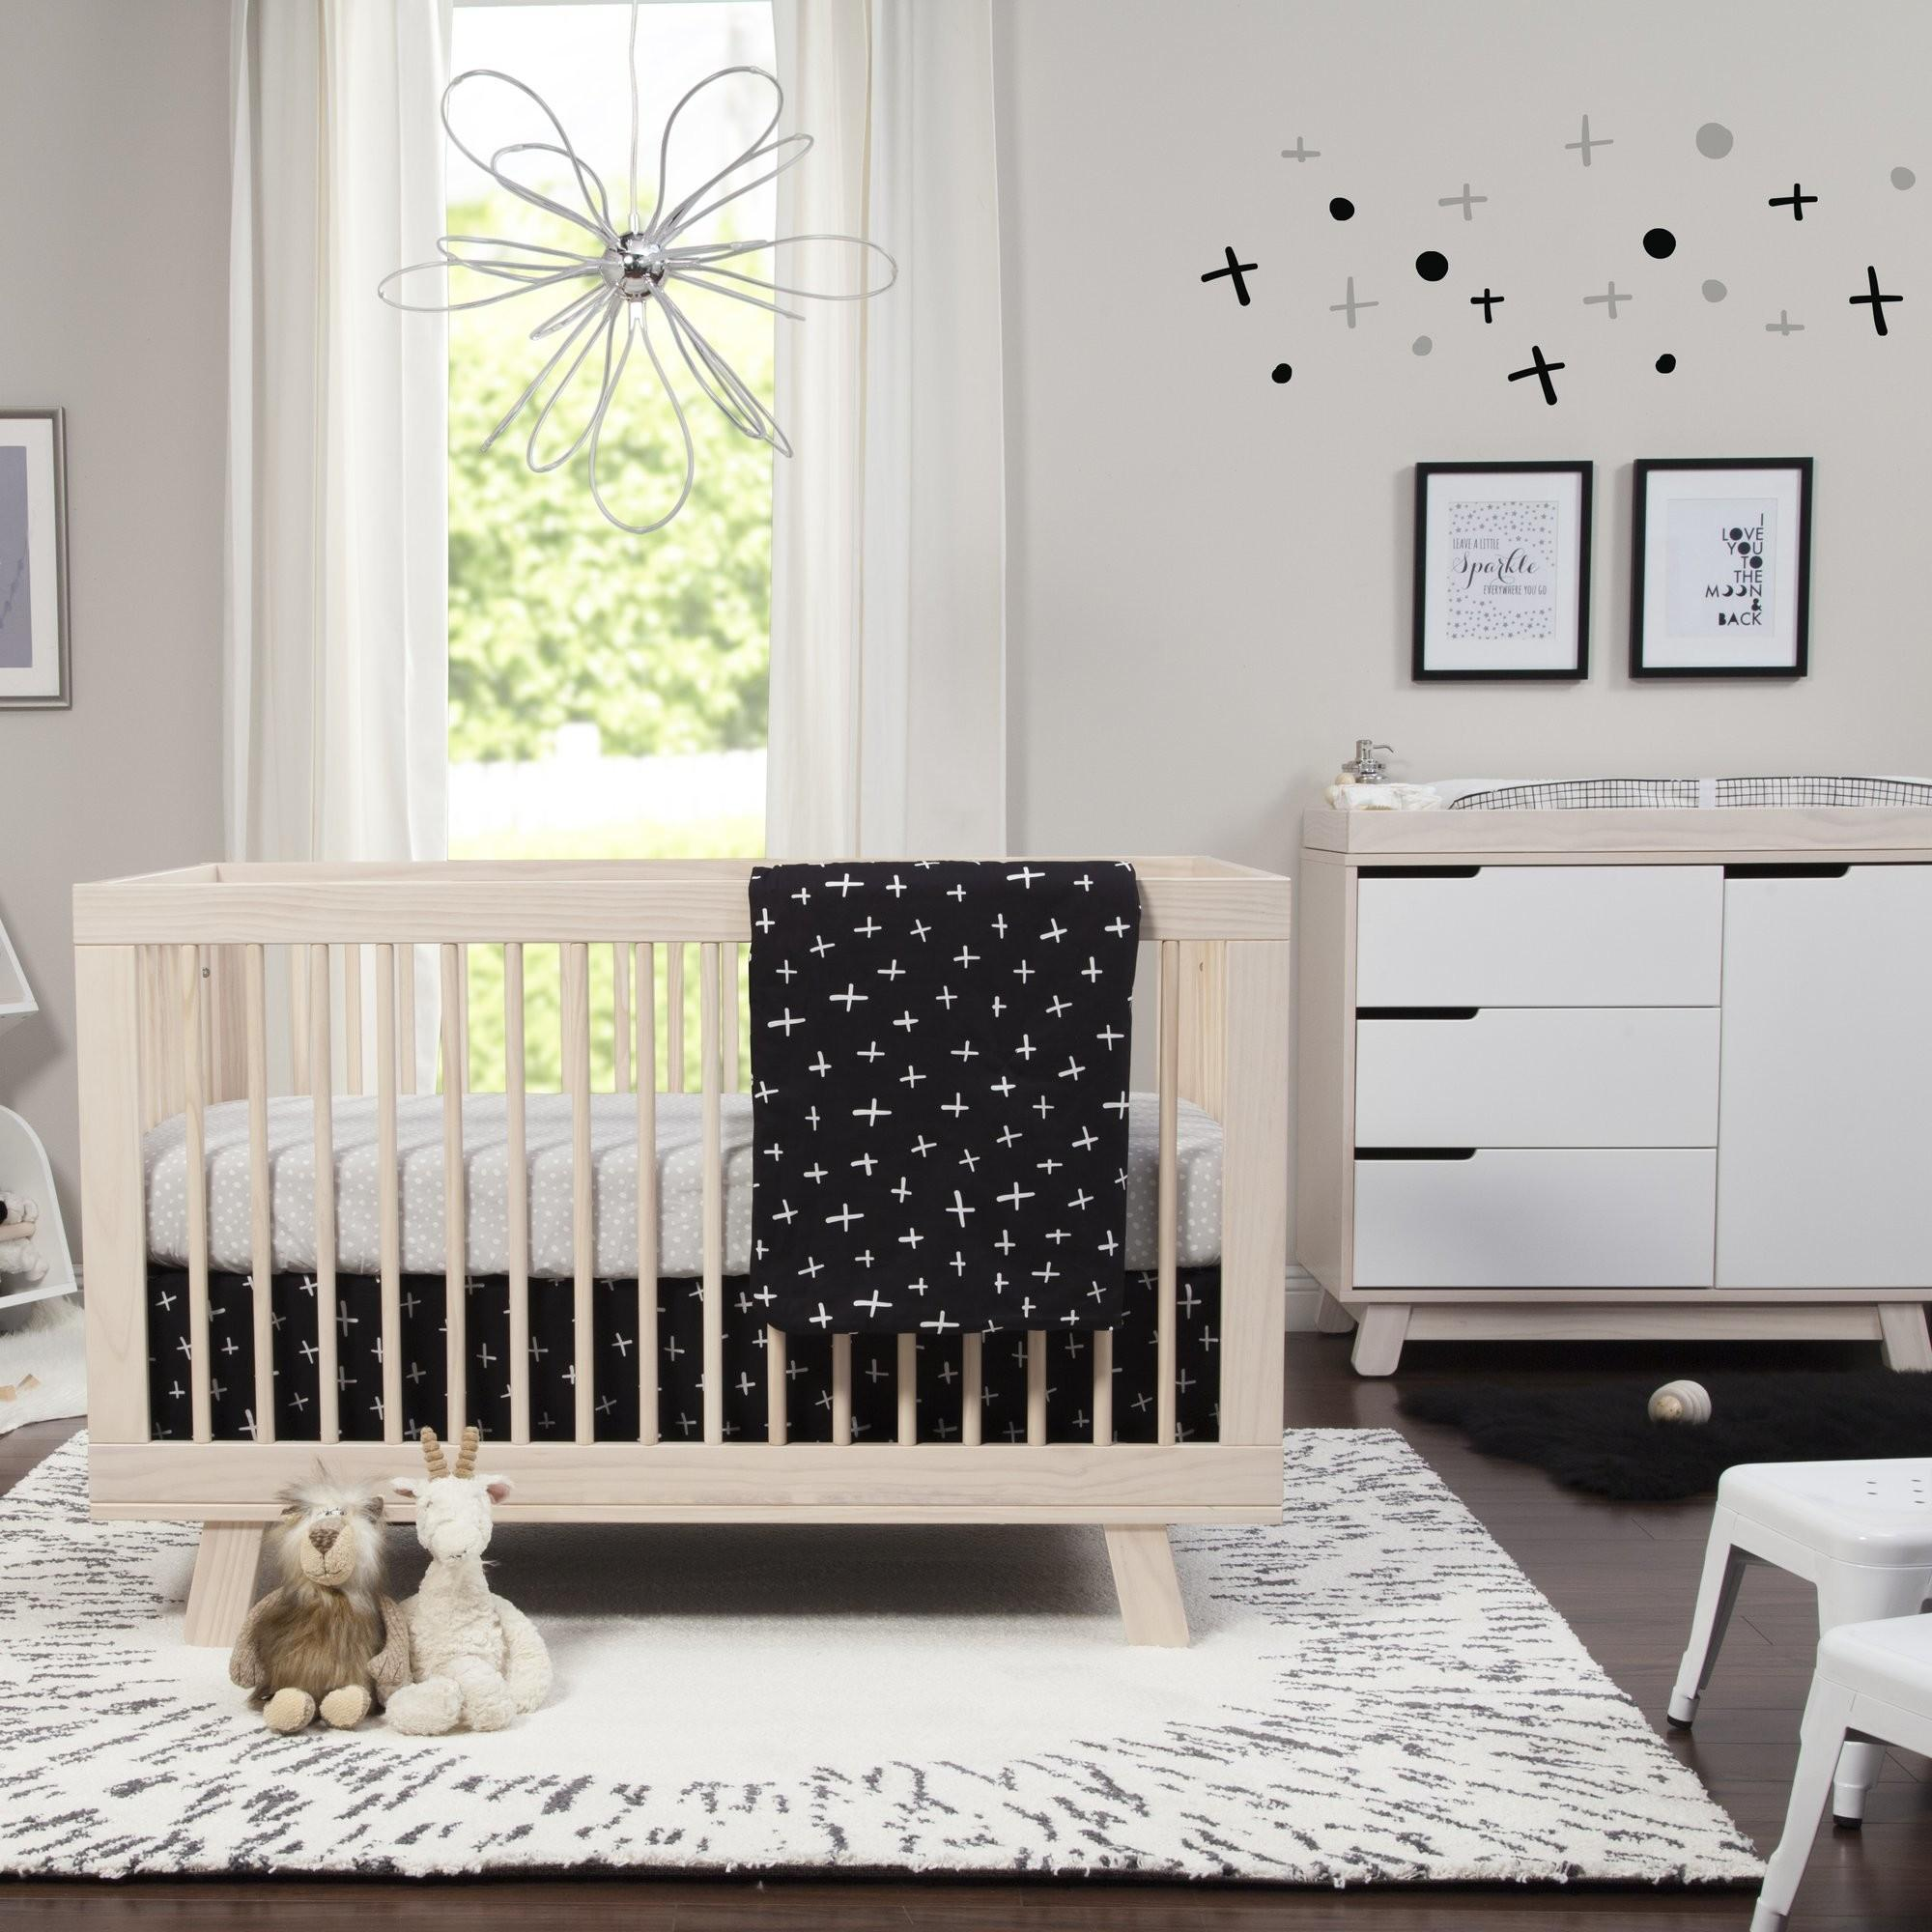 Babyletto Tuxedo Monochrome Nursery Piece Crib Bedding